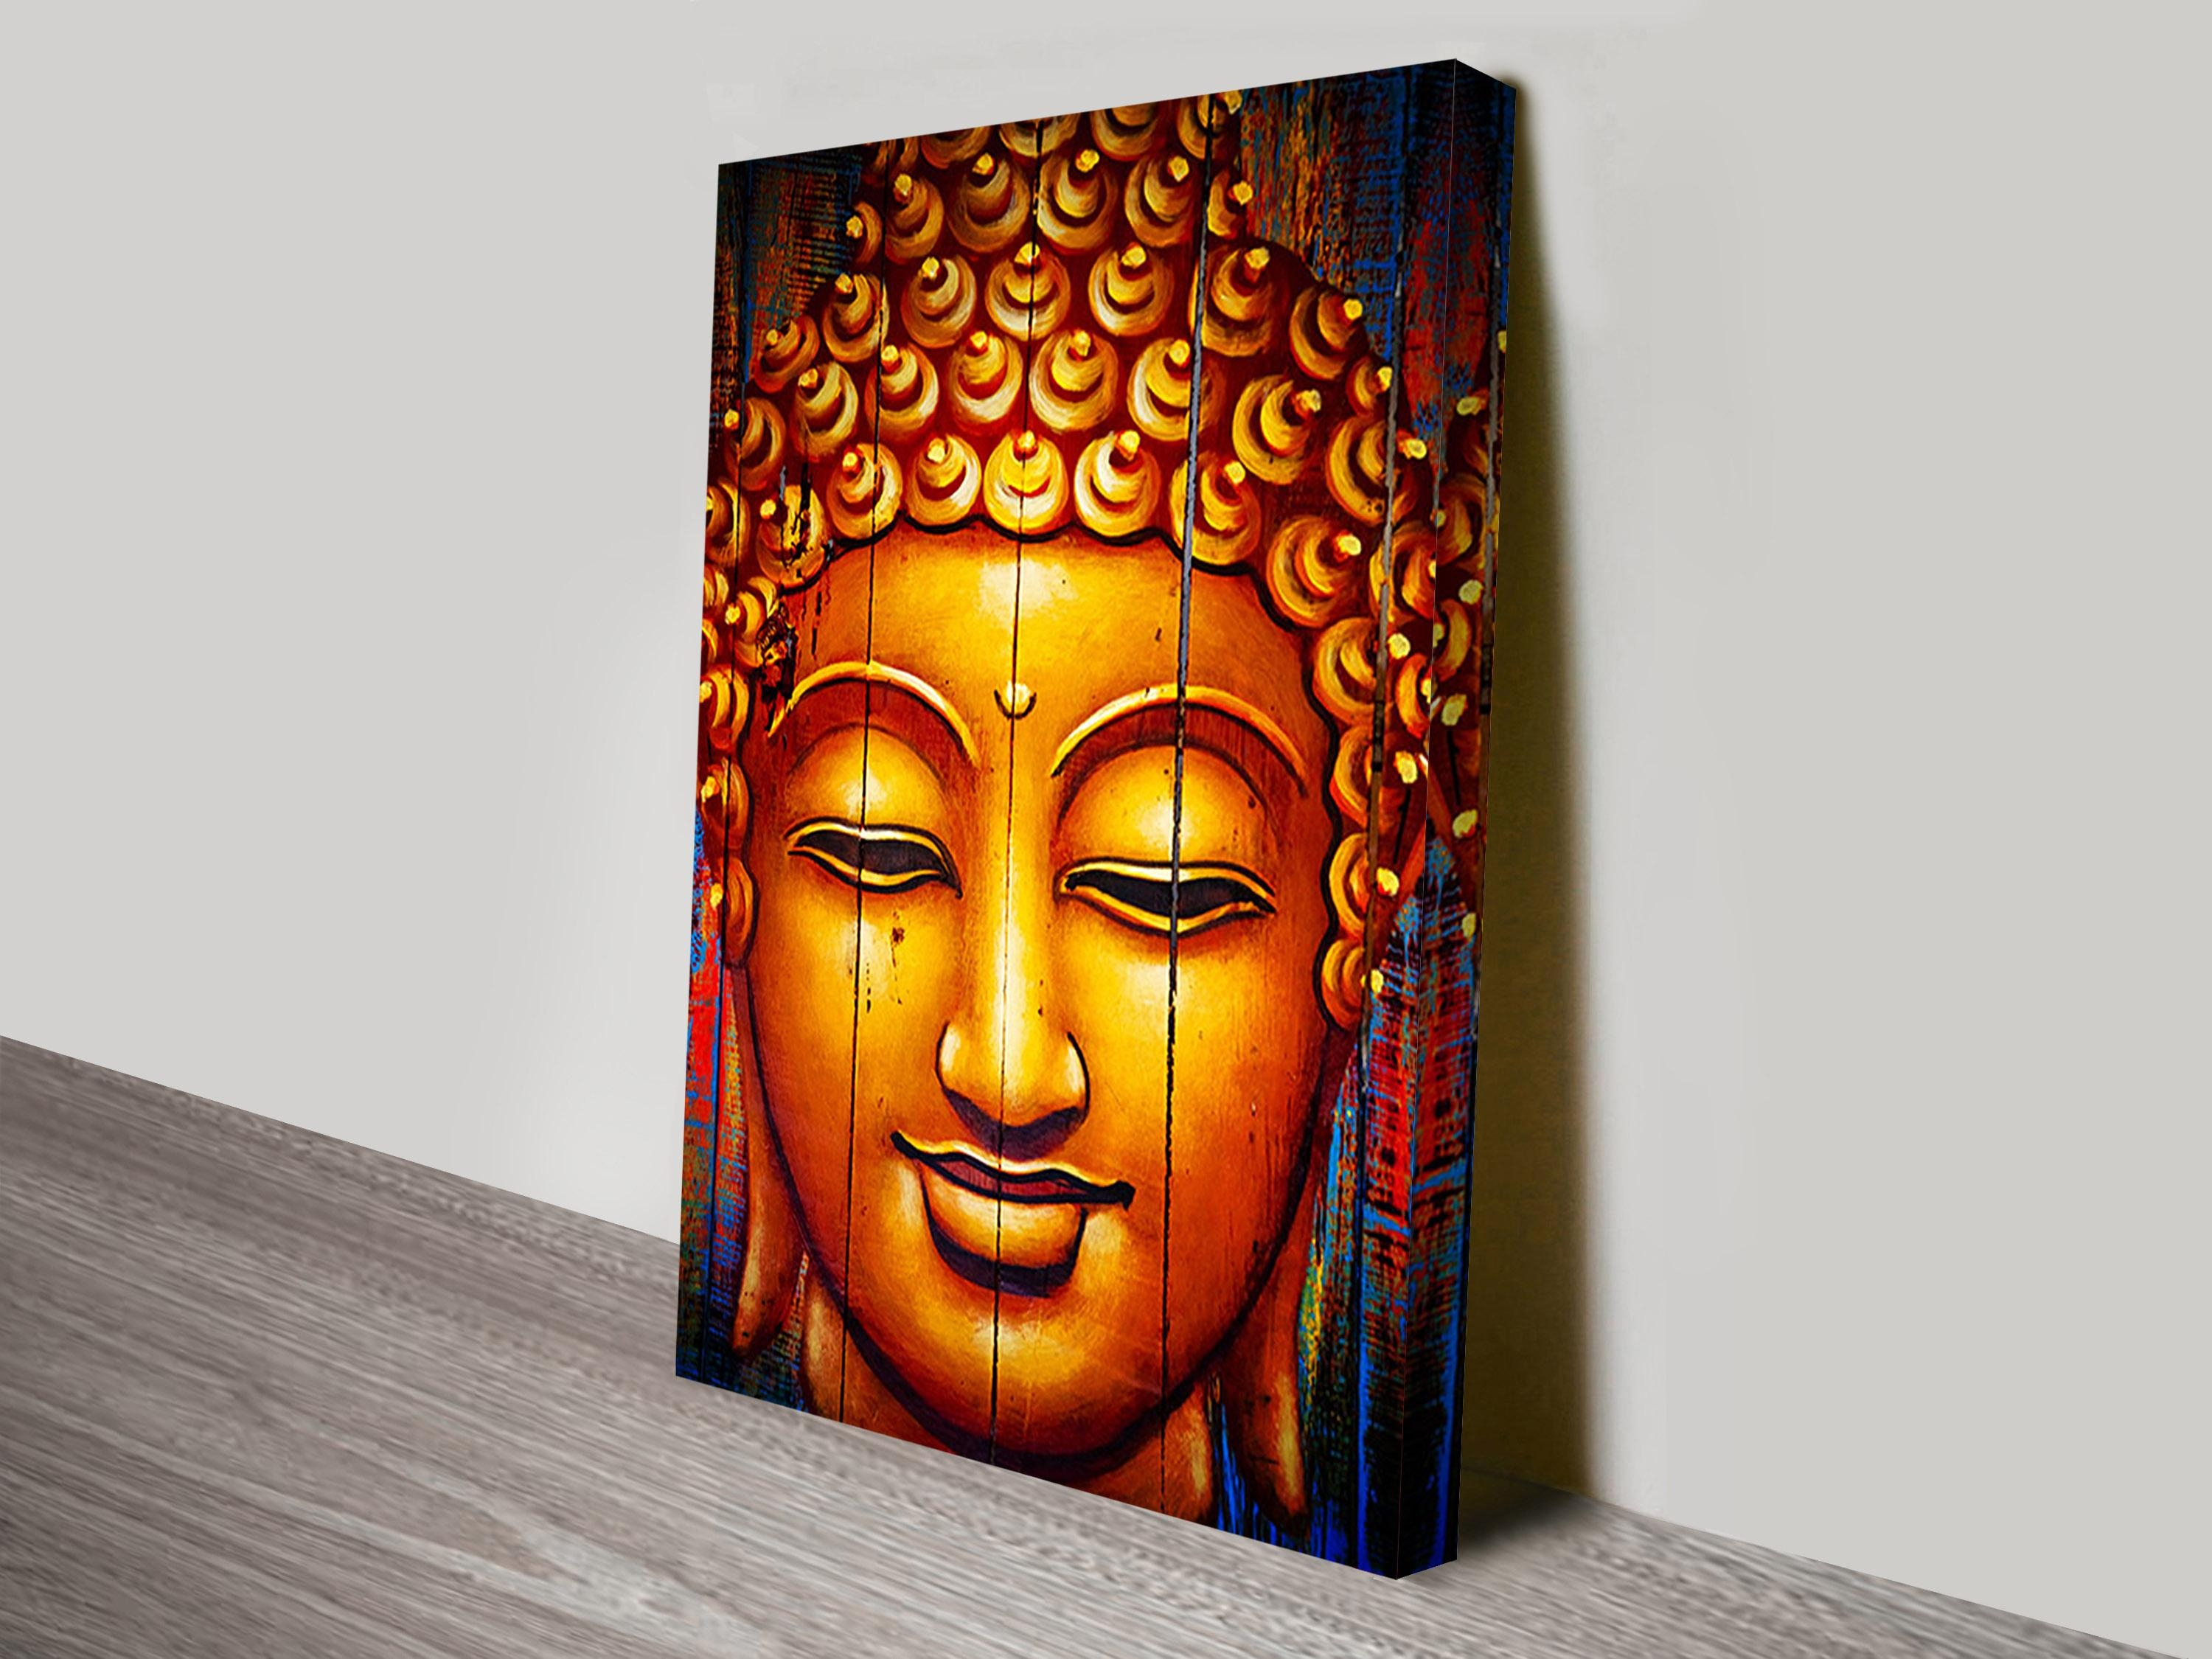 Buy Spirituality & Buddha Wrapped Canvas Prints & Wall Art Online Pertaining To Silver Buddha Wall Art (Image 6 of 20)